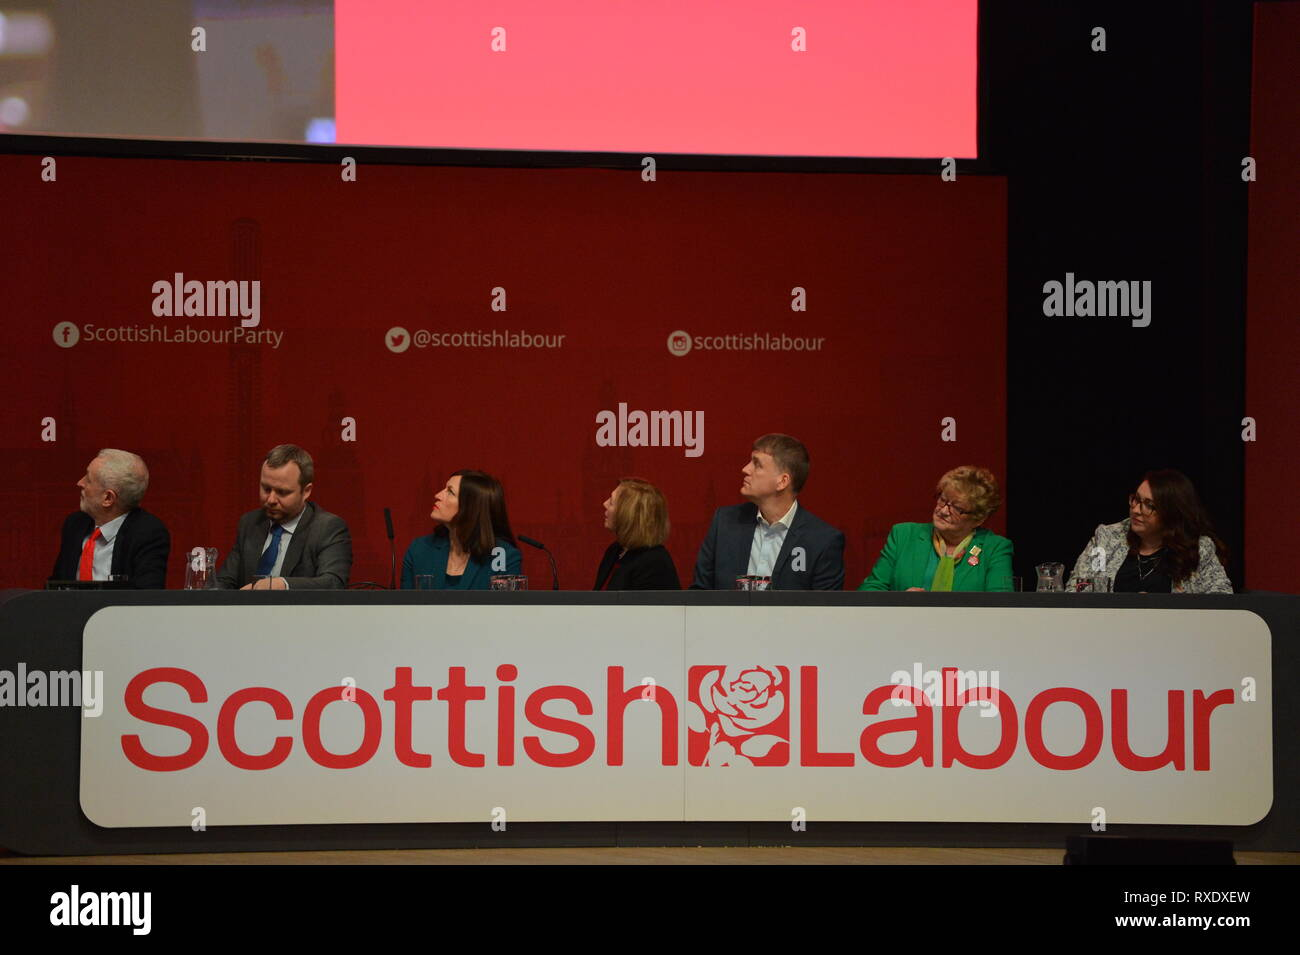 Dundee, Scotland, UK. 9th Mar, 2019. Scottish Labour Leader - Richard Leonard addresses conference with his keynote speech. Credit: Colin Fisher/Alamy Live News - Stock Image